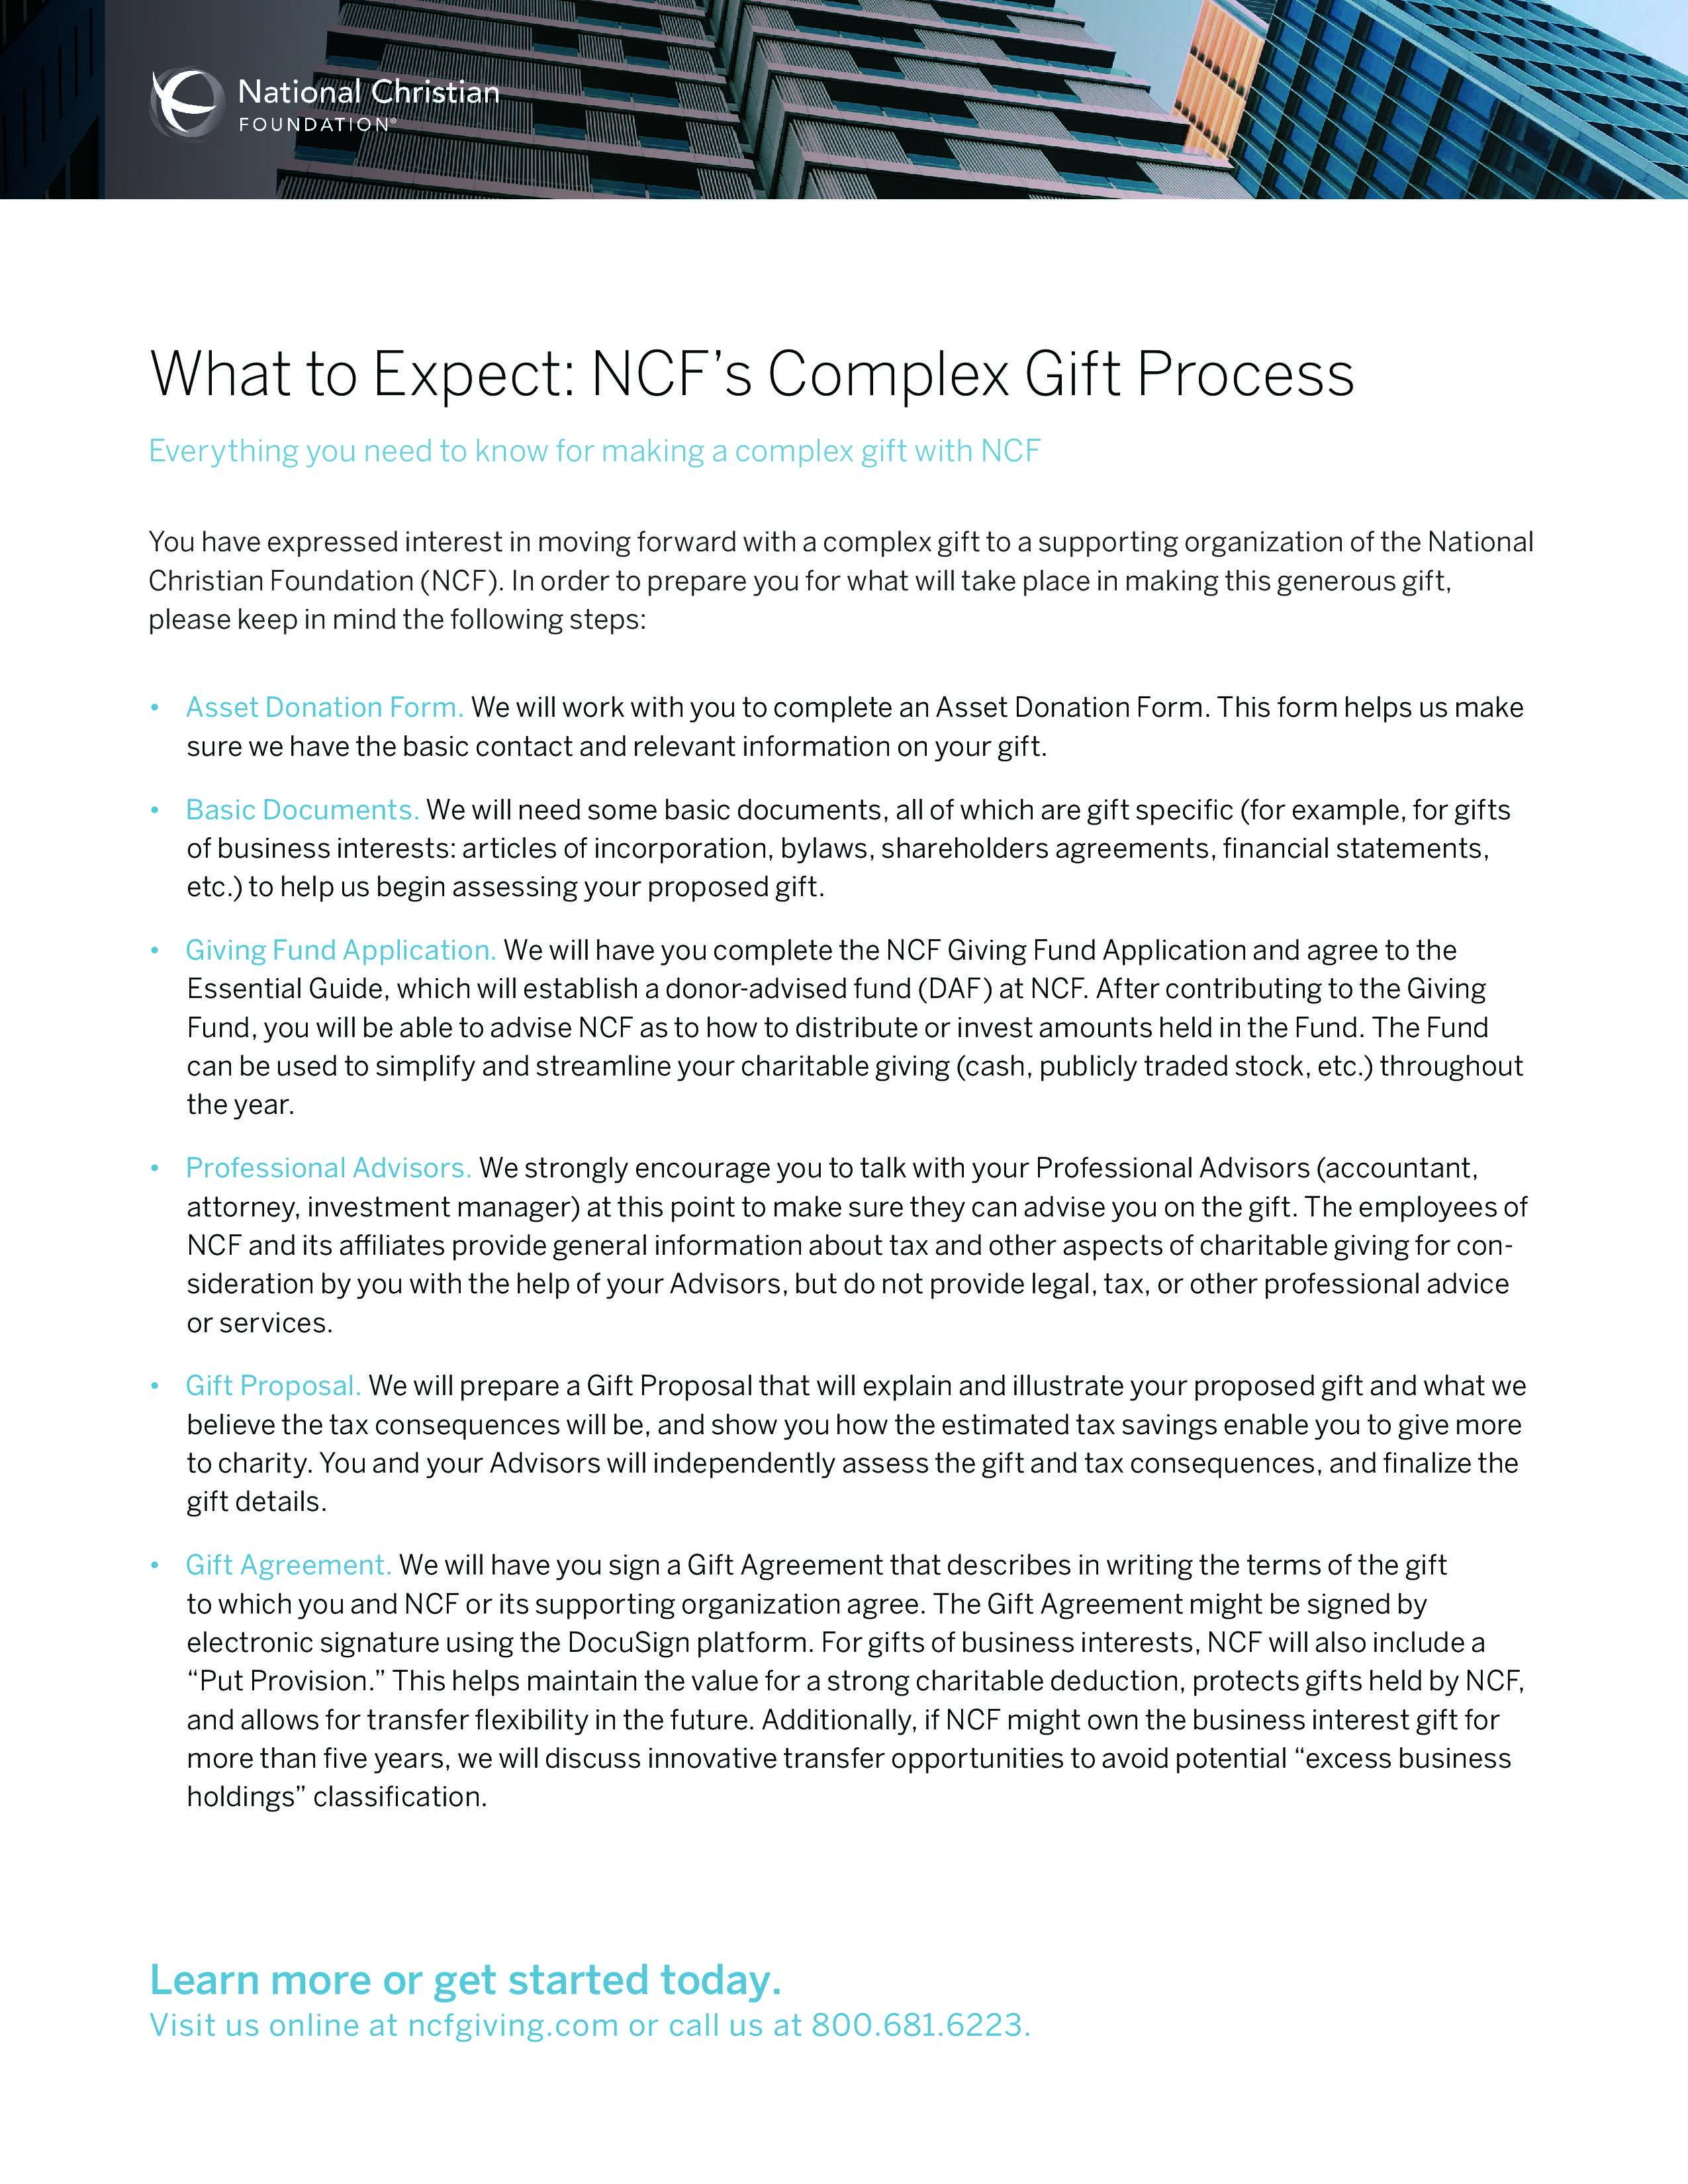 What to Expect: NCF's Complex Gift Process